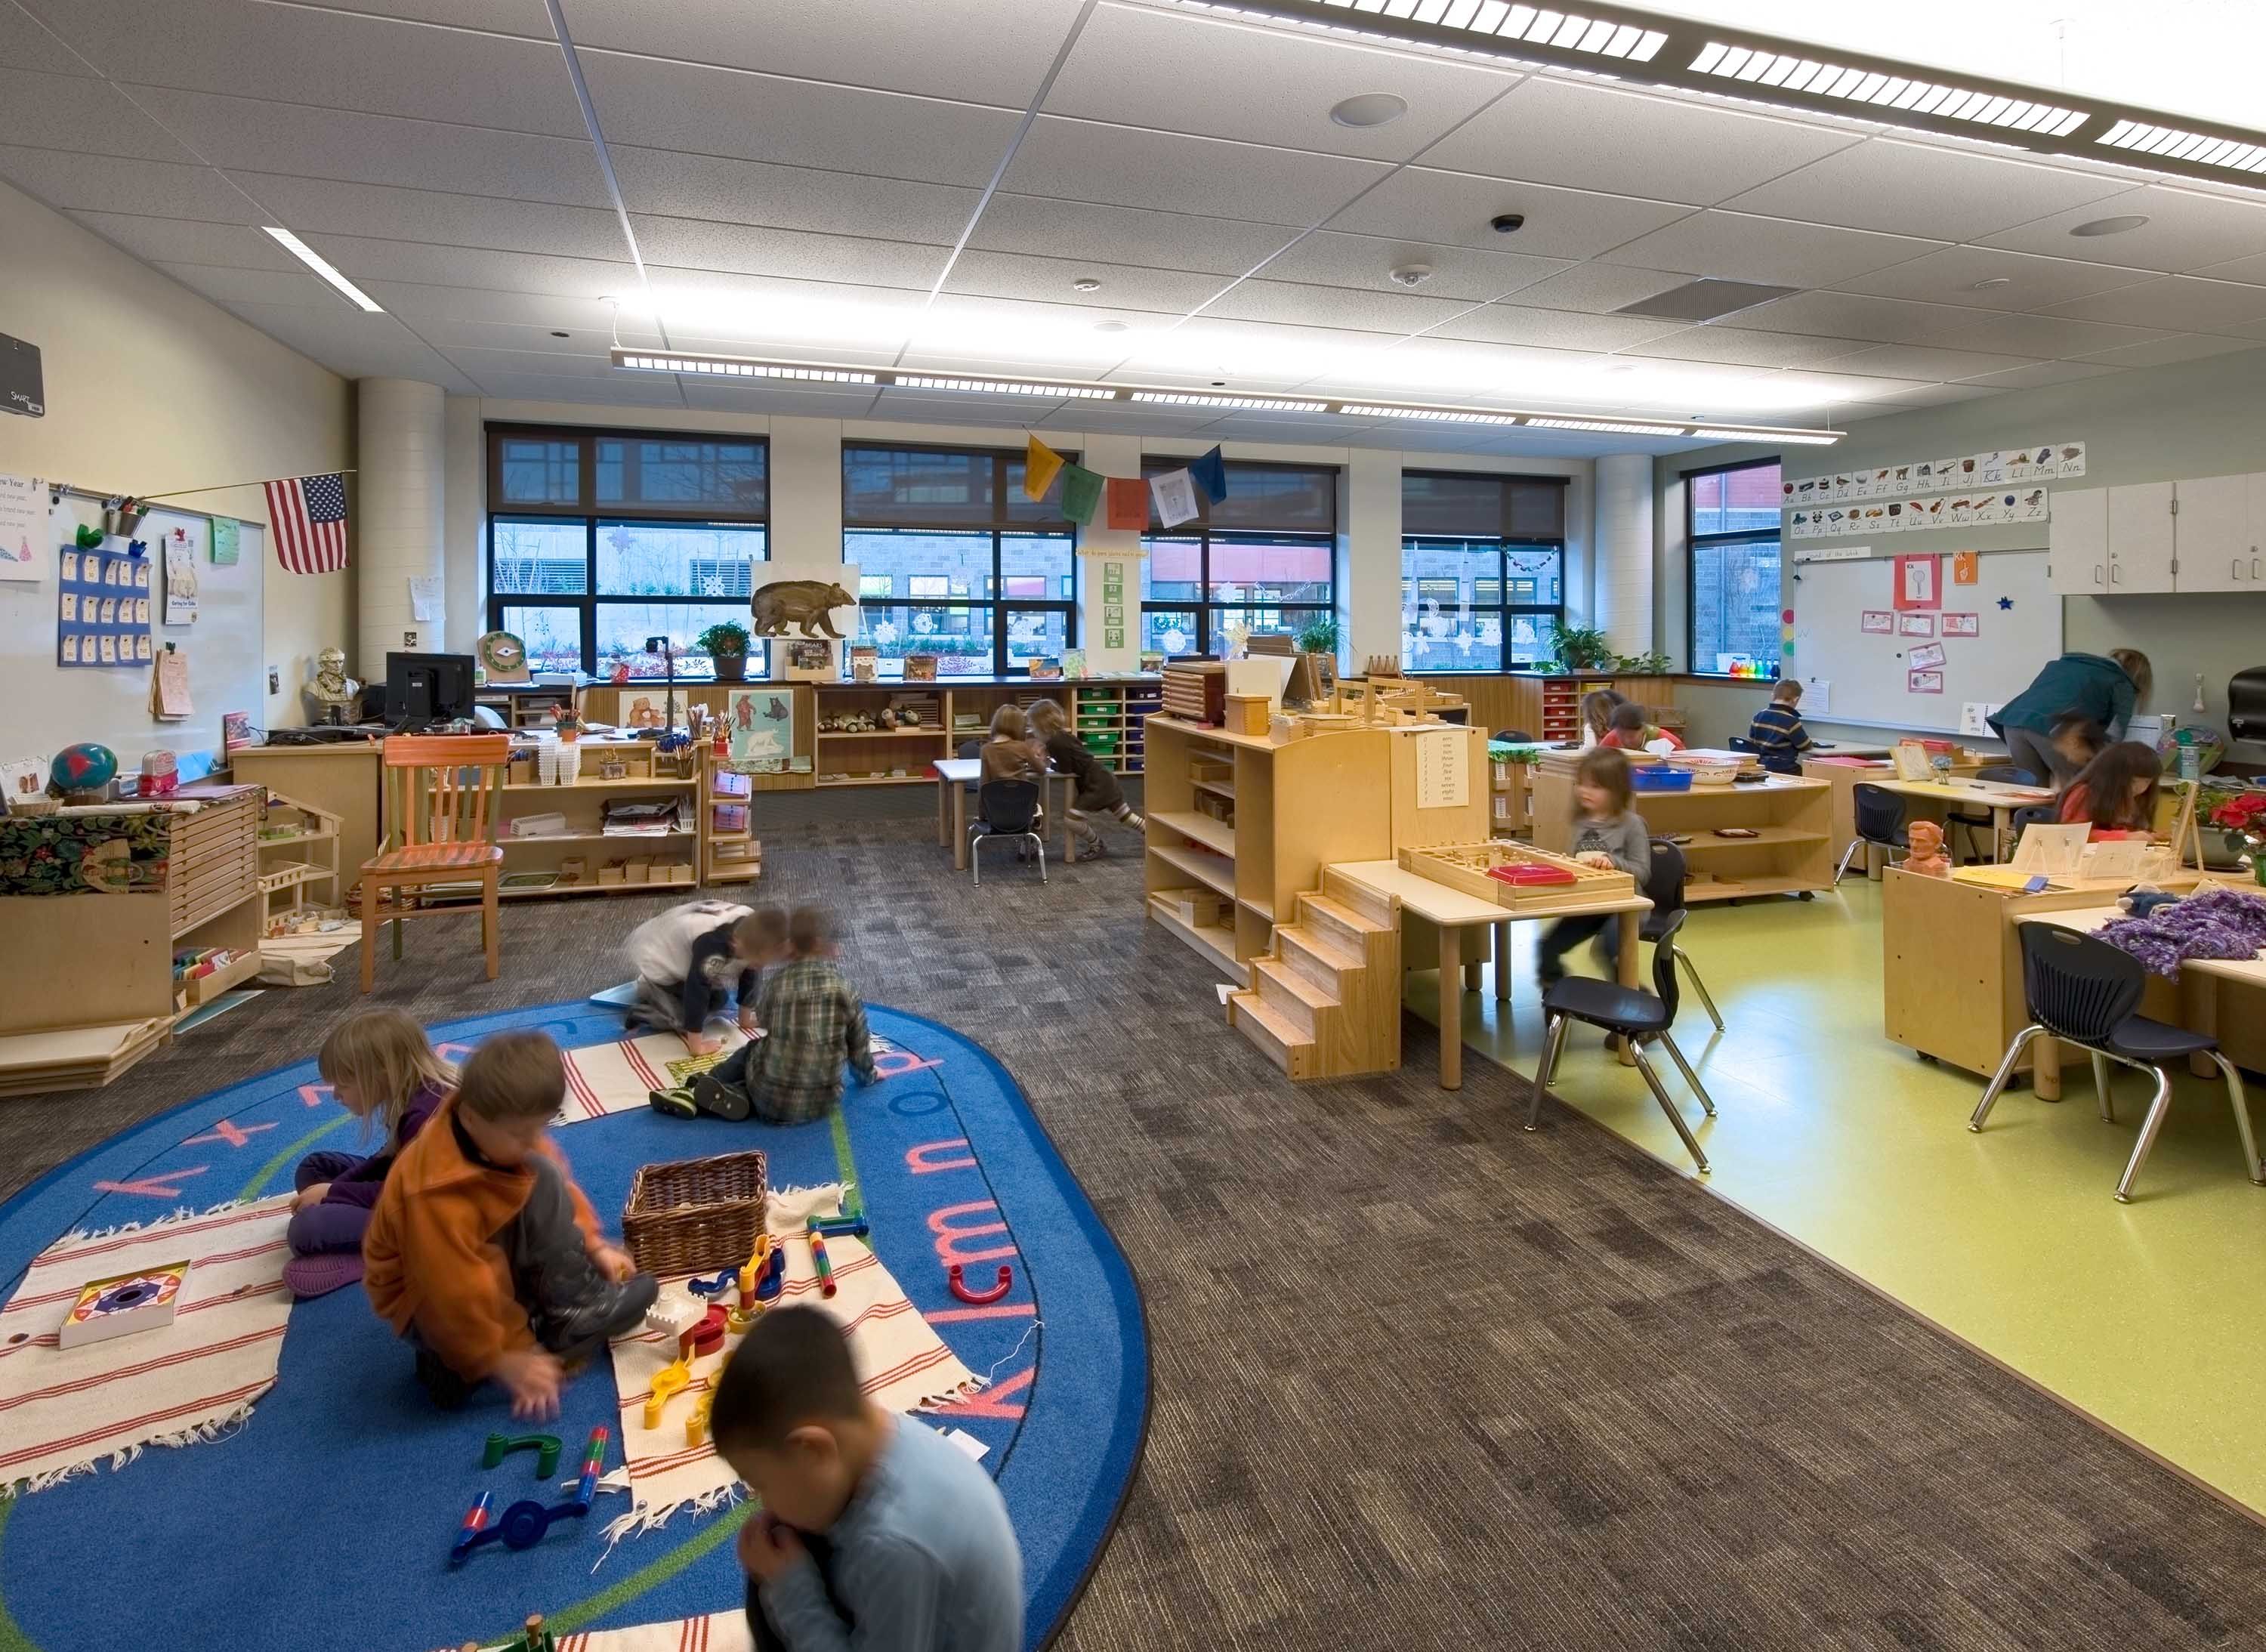 A wide photo of the library with students learning at multiple areas of the room.